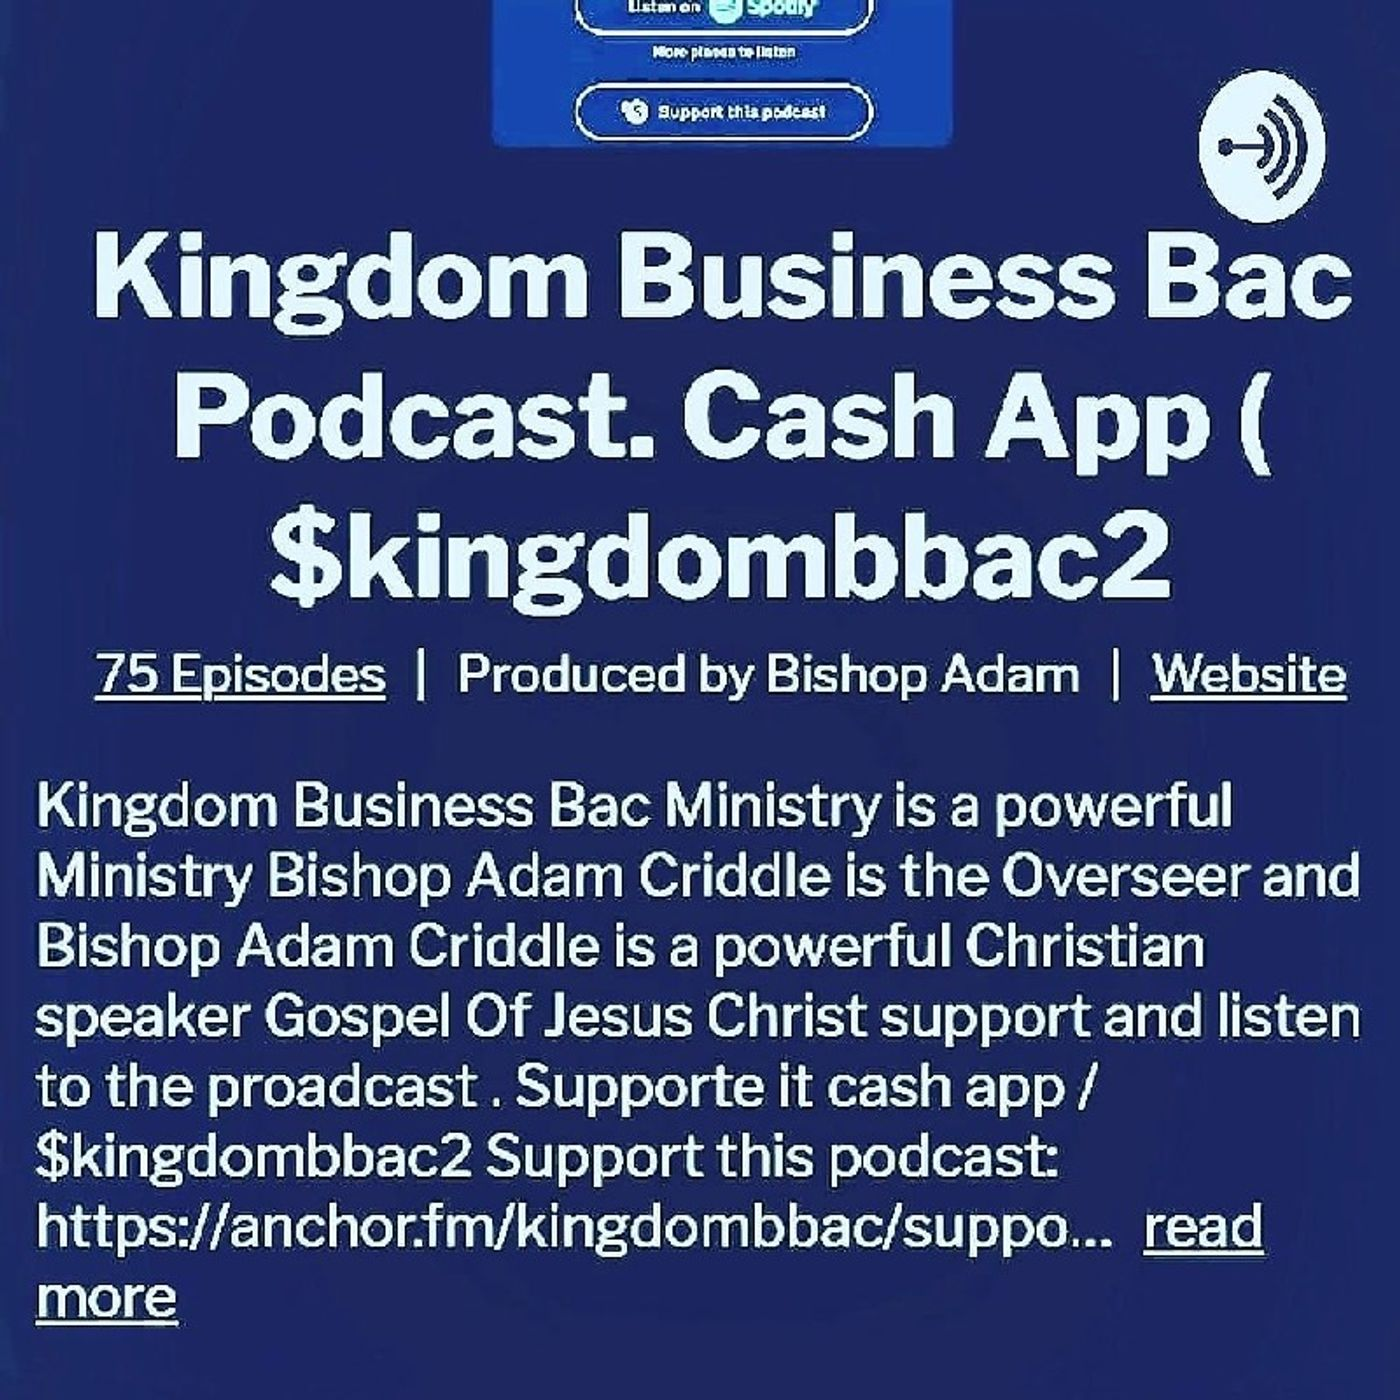 Episode 113 - KIMGDOM BUSINESS Bac Ministry's show